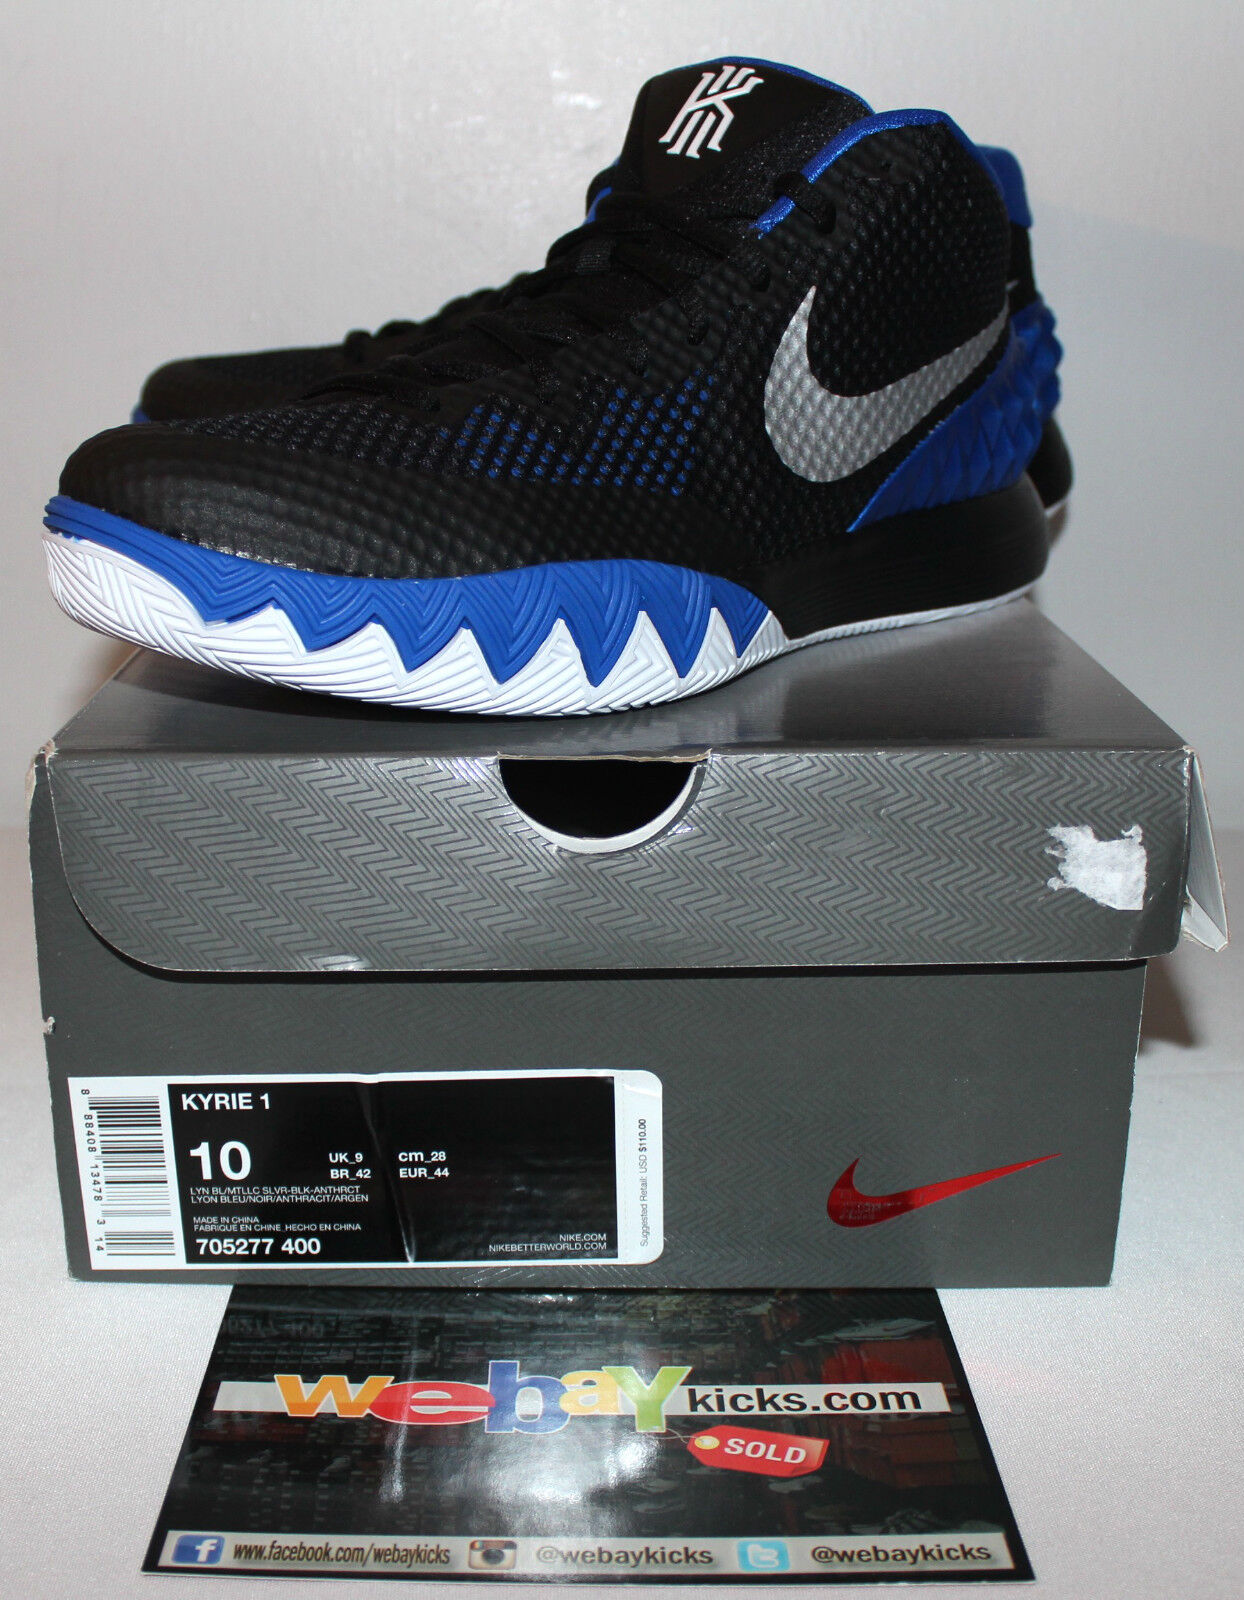 Nike Air Kyrie 1 I Brotherhood Black Royal White Sneakers Men's Size 10 New